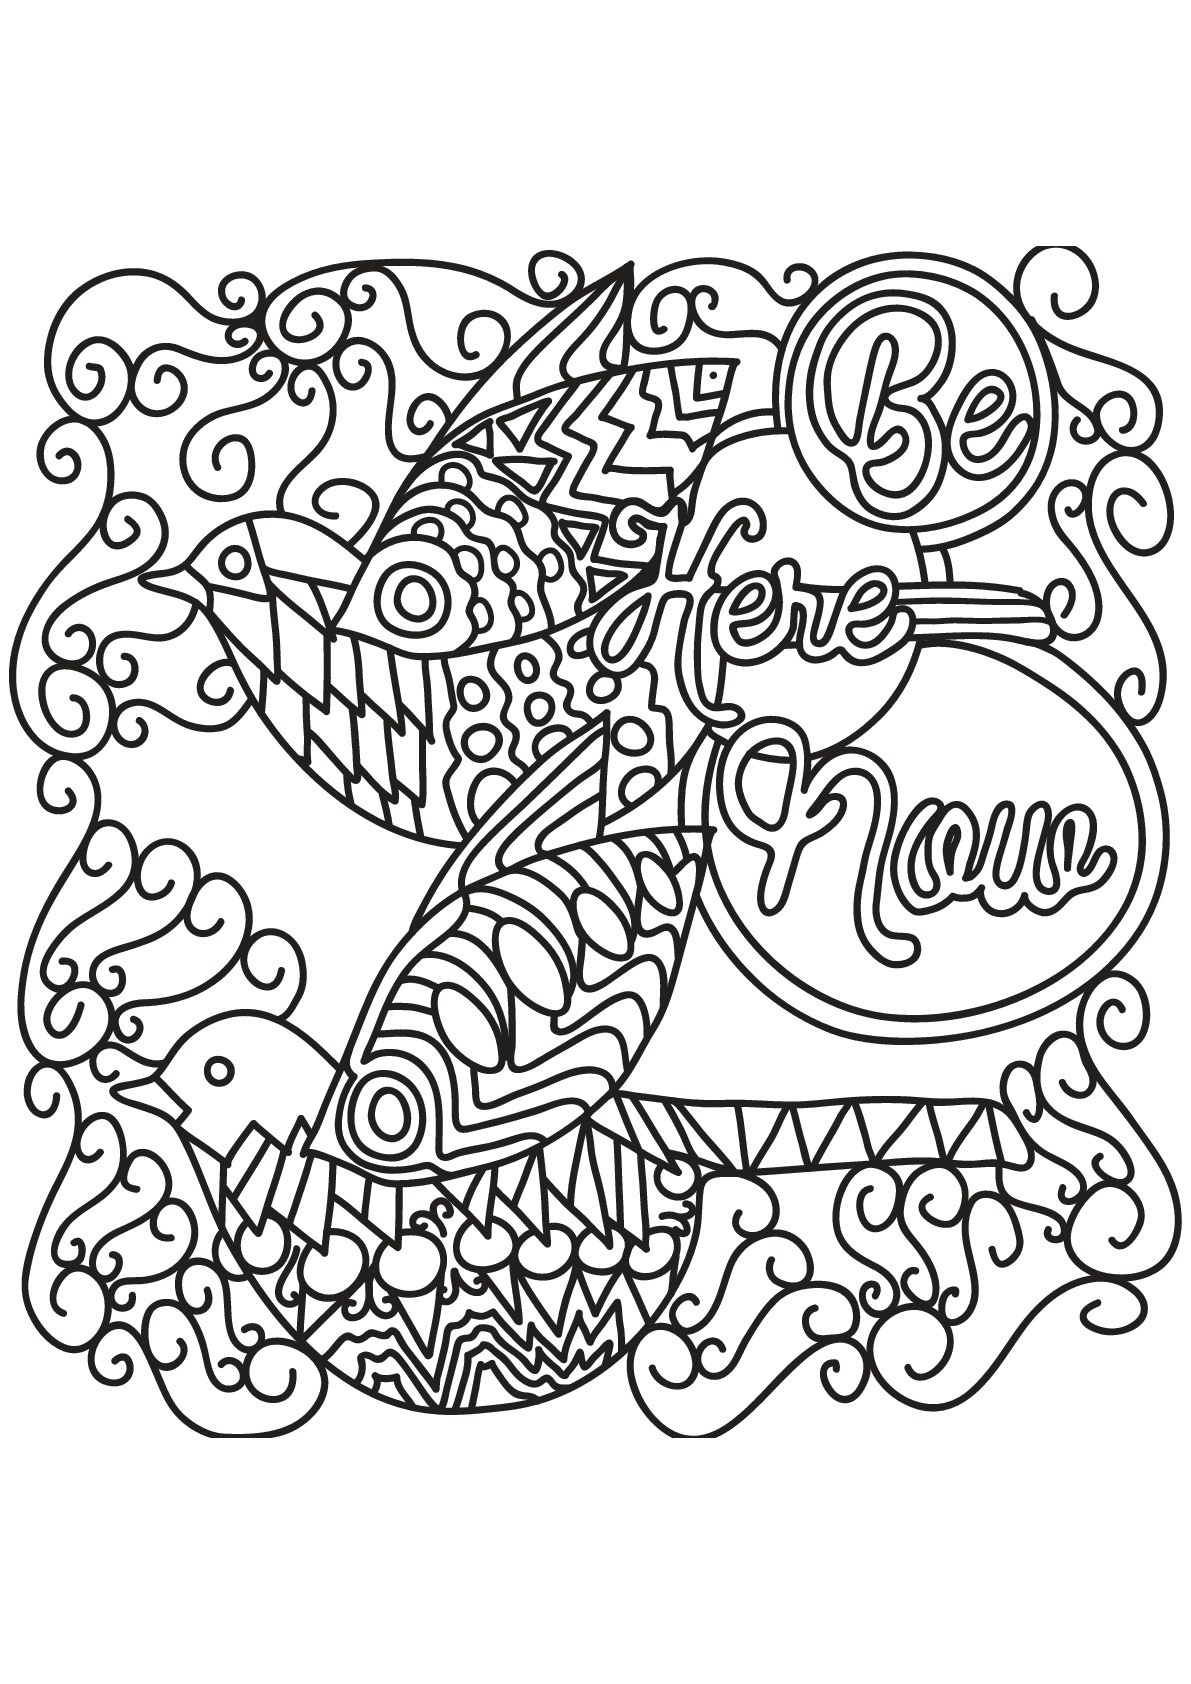 Free book quote 16 - Quotes Adult Coloring Pages | printable coloring pages for adults quotes